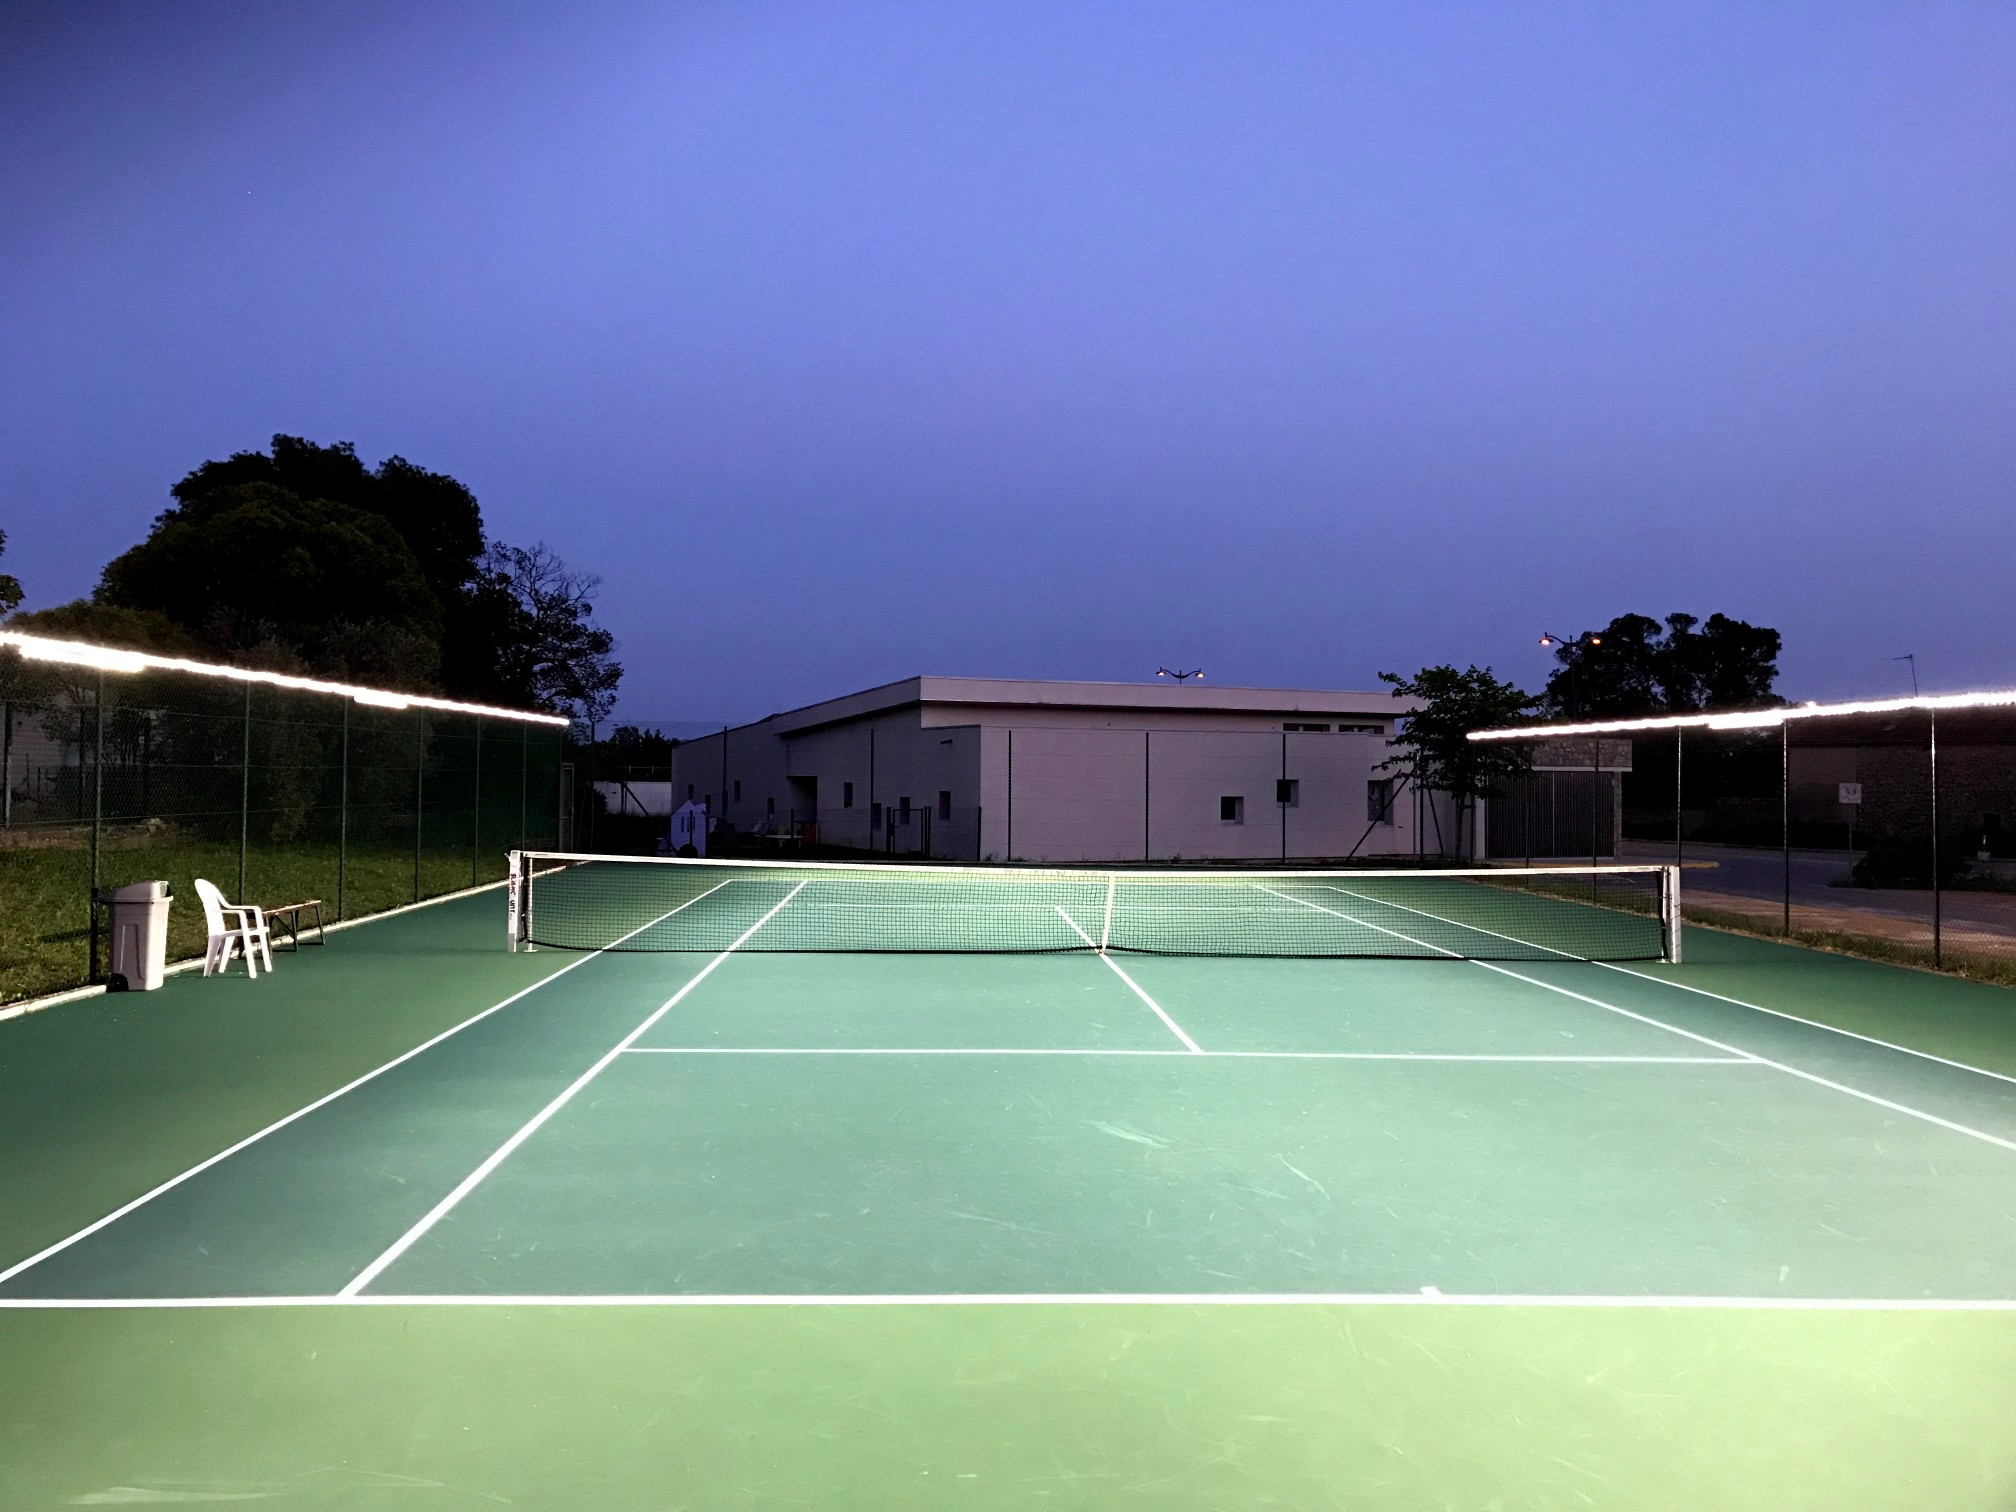 New advances in LED tennis court lighting from Tweener® provide outstanding court illumination at a fraction of the cost.